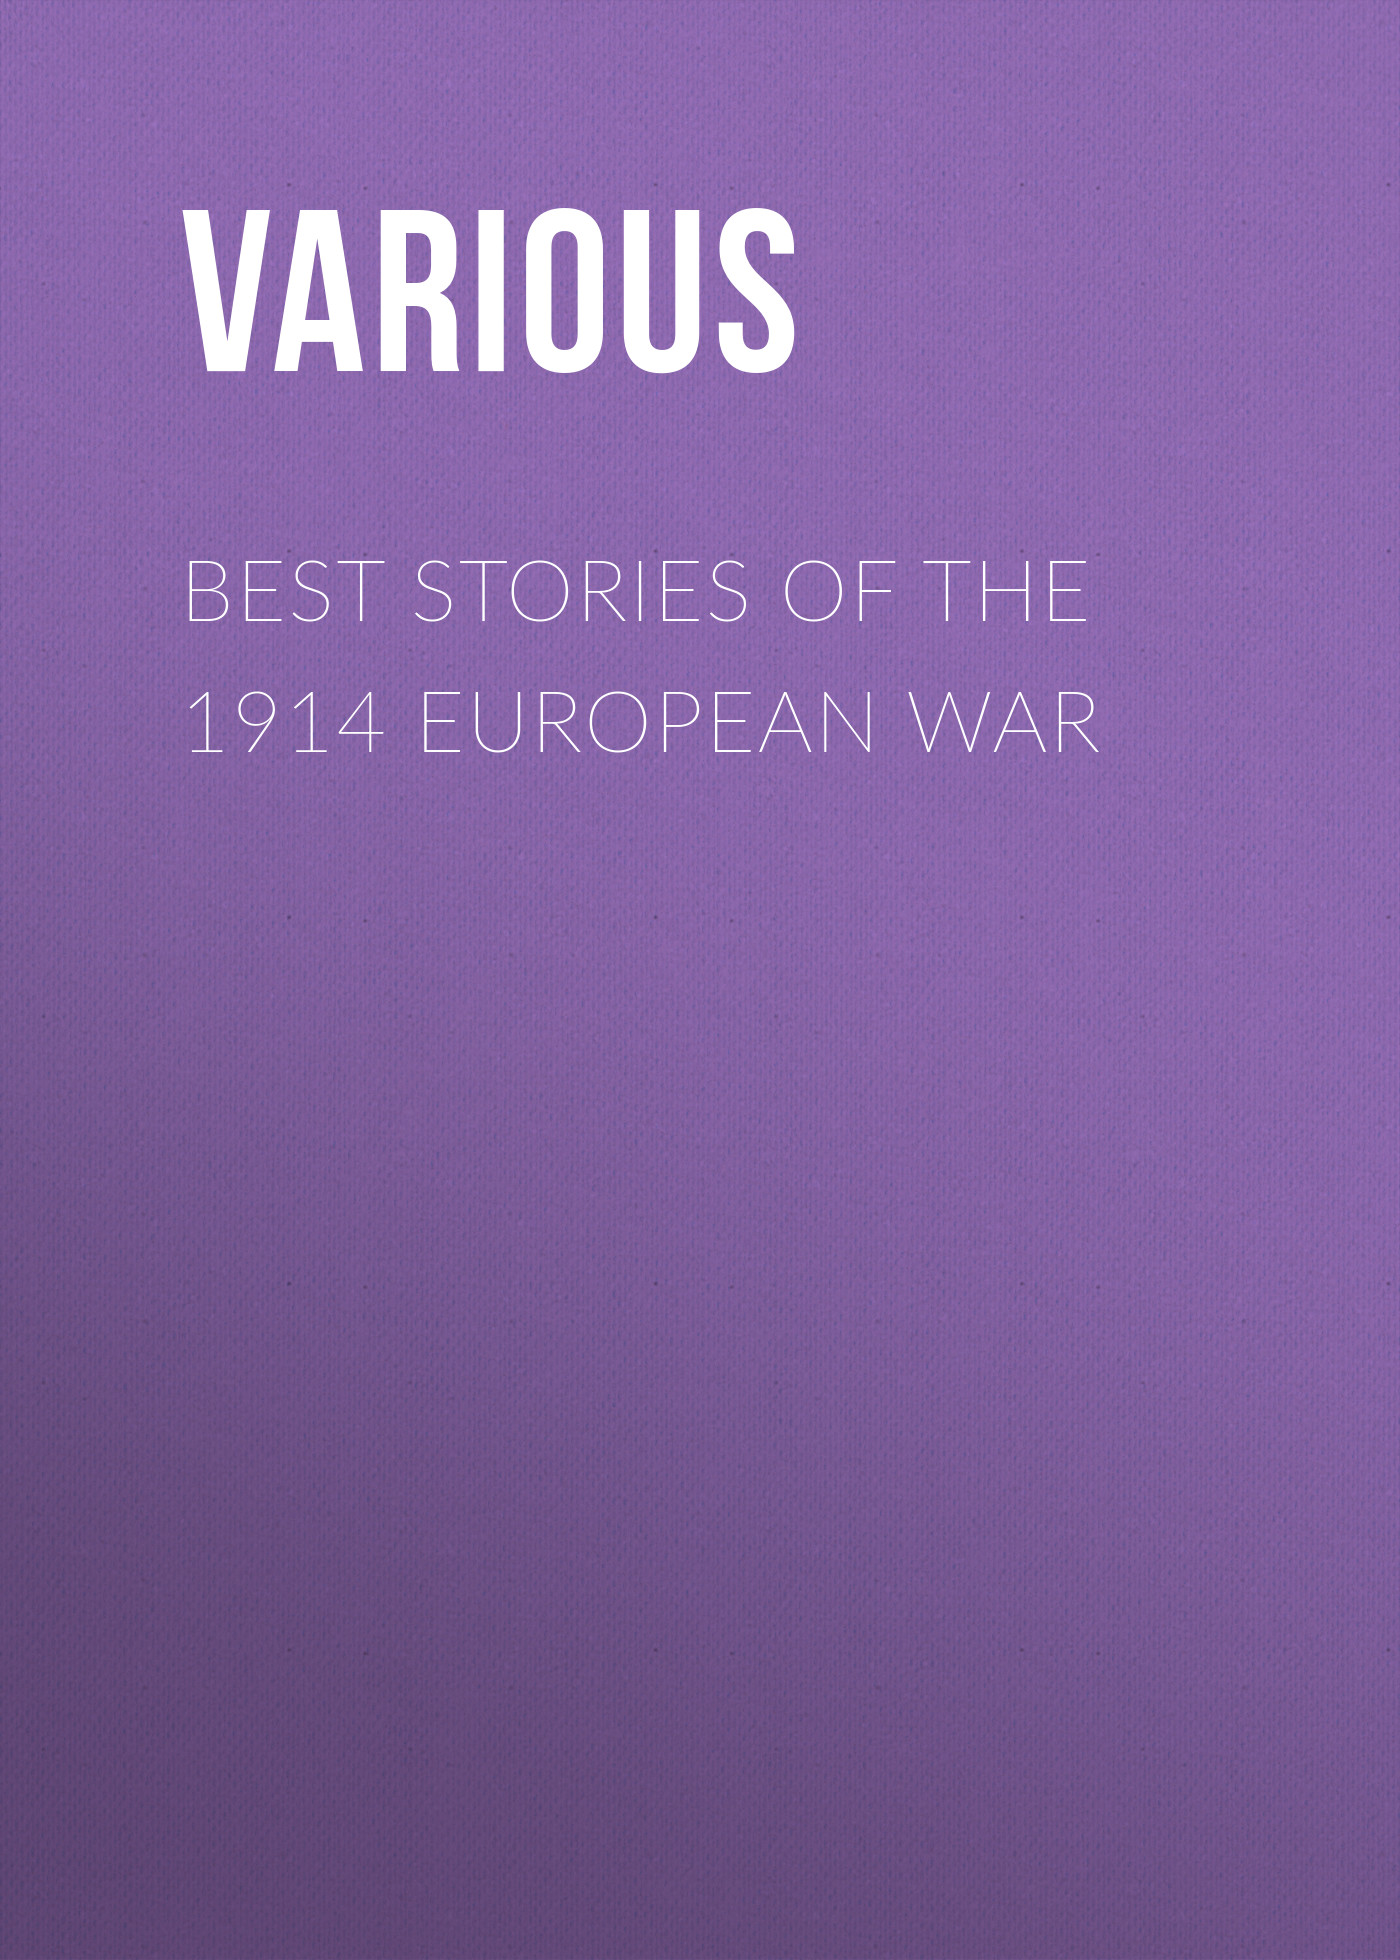 Various Best Stories of the 1914 European War 25 best stories